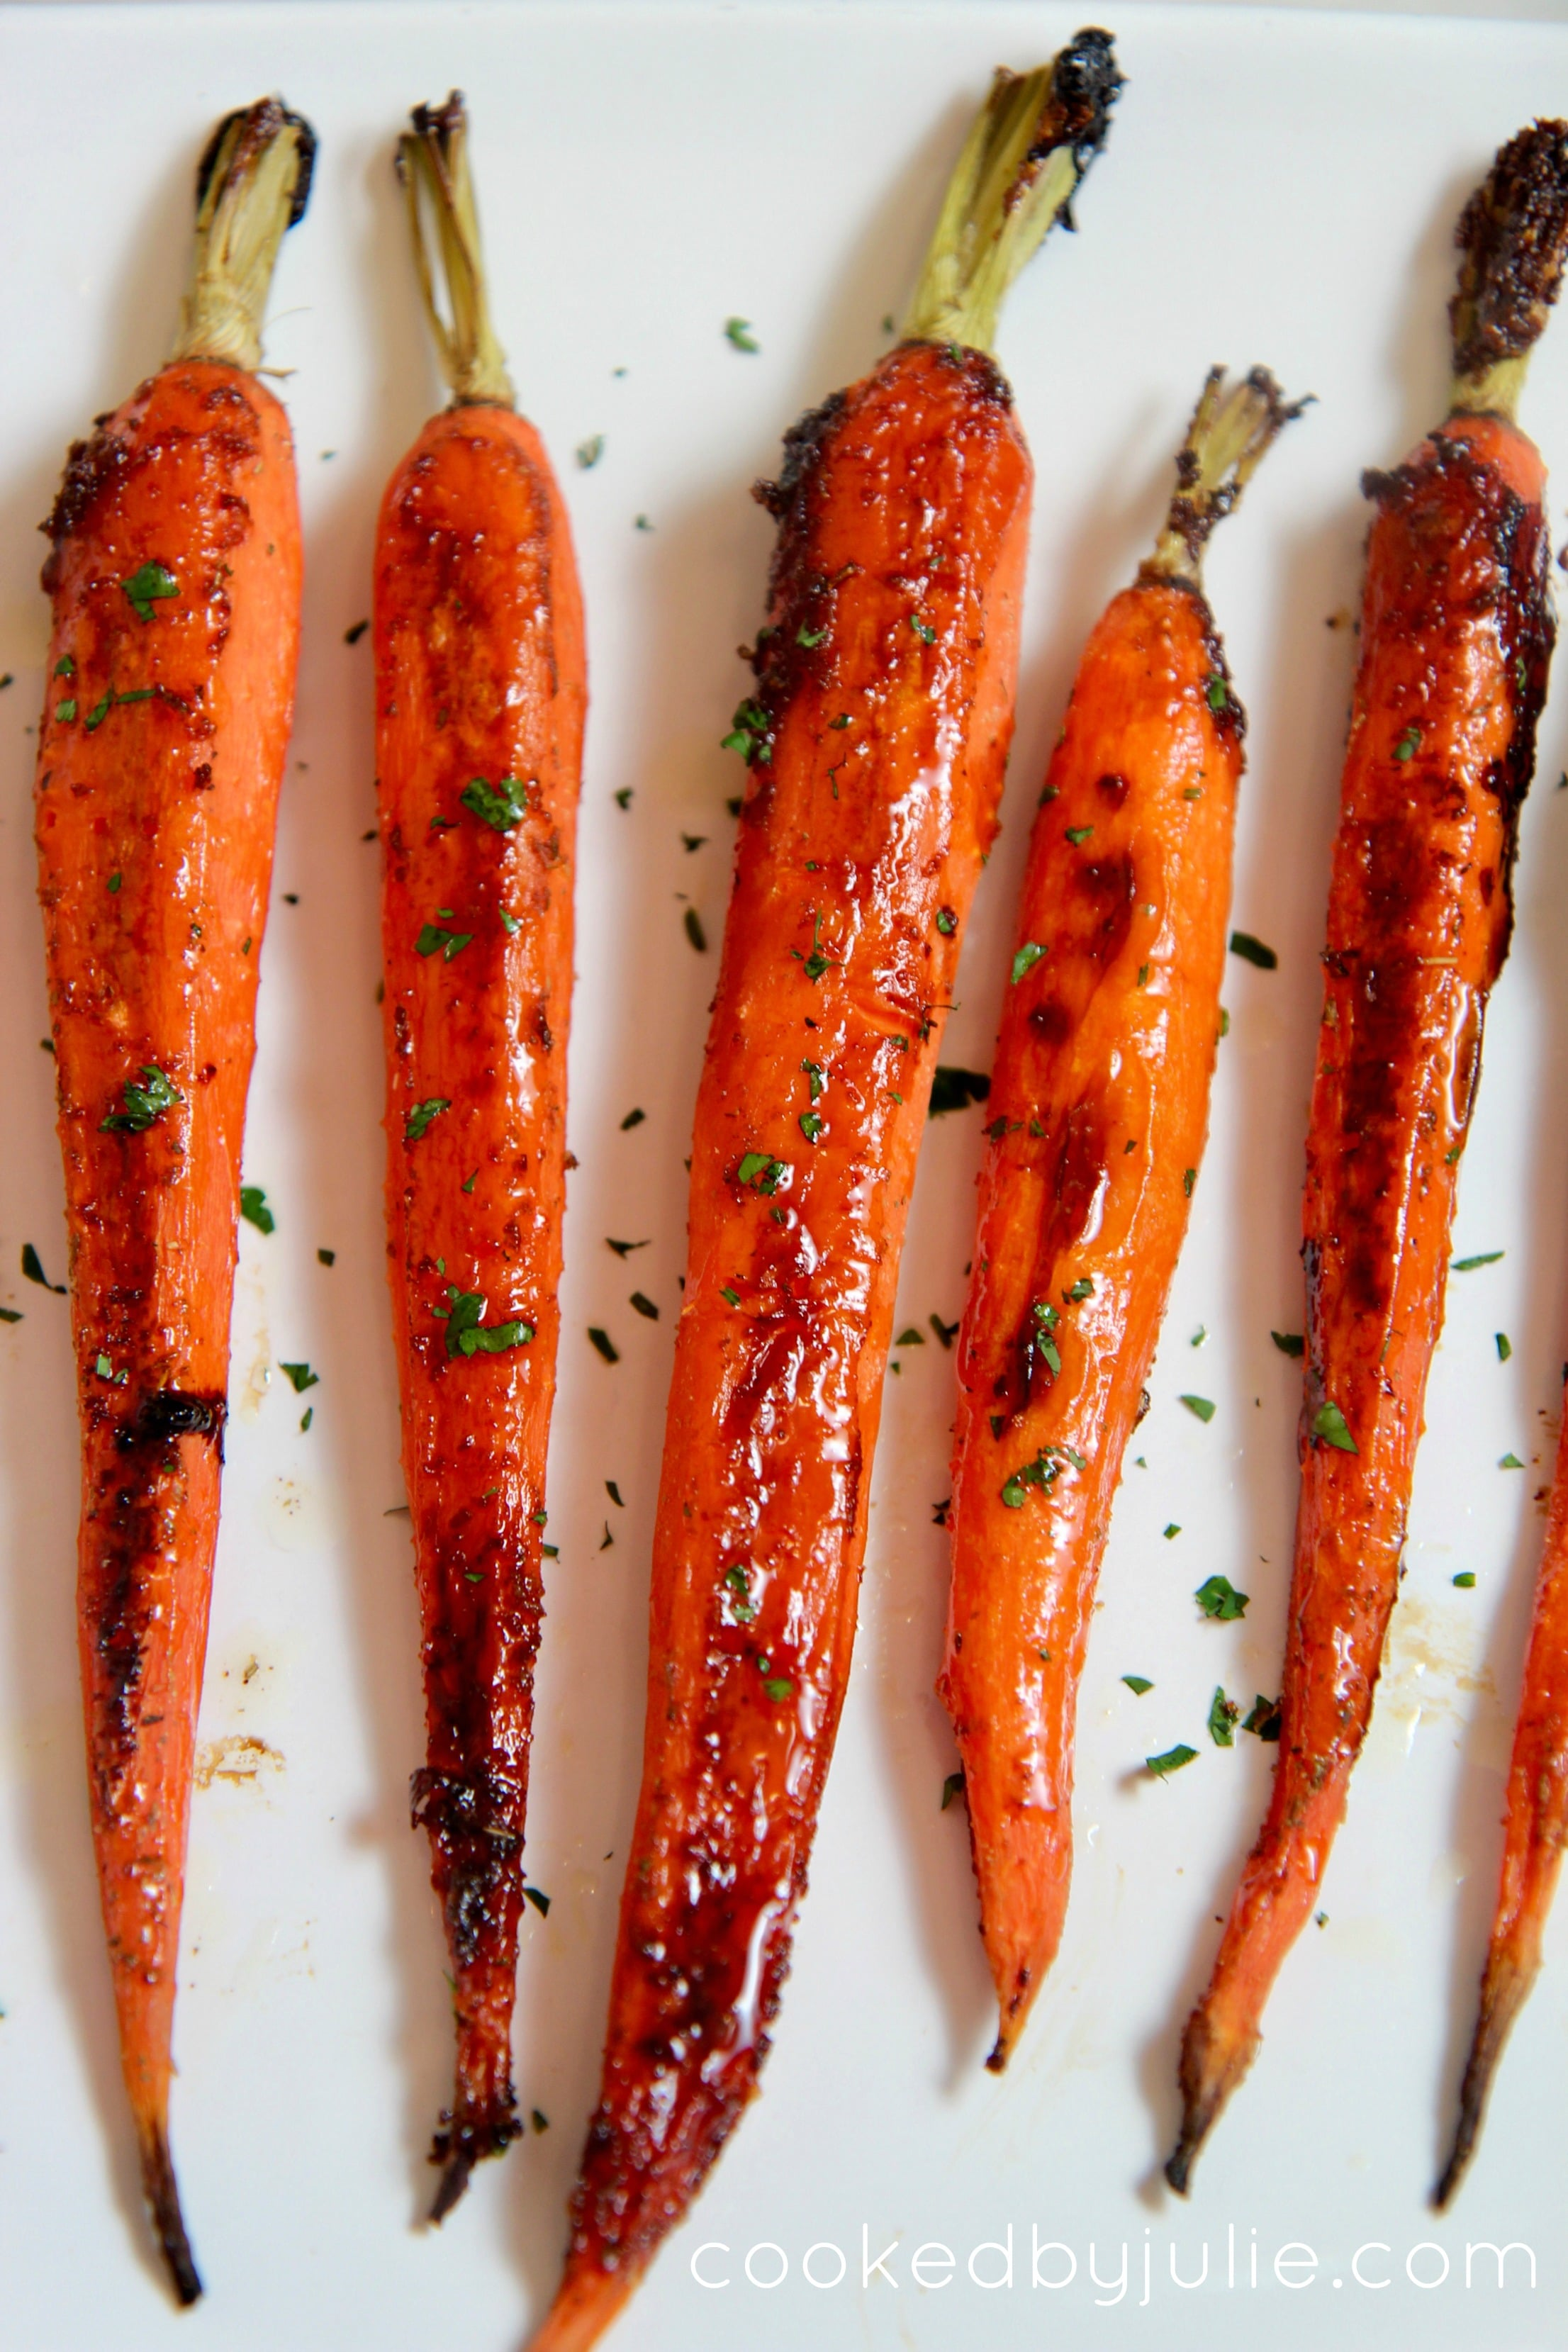 roasted honey glazed carrots garnished with fresh parsley